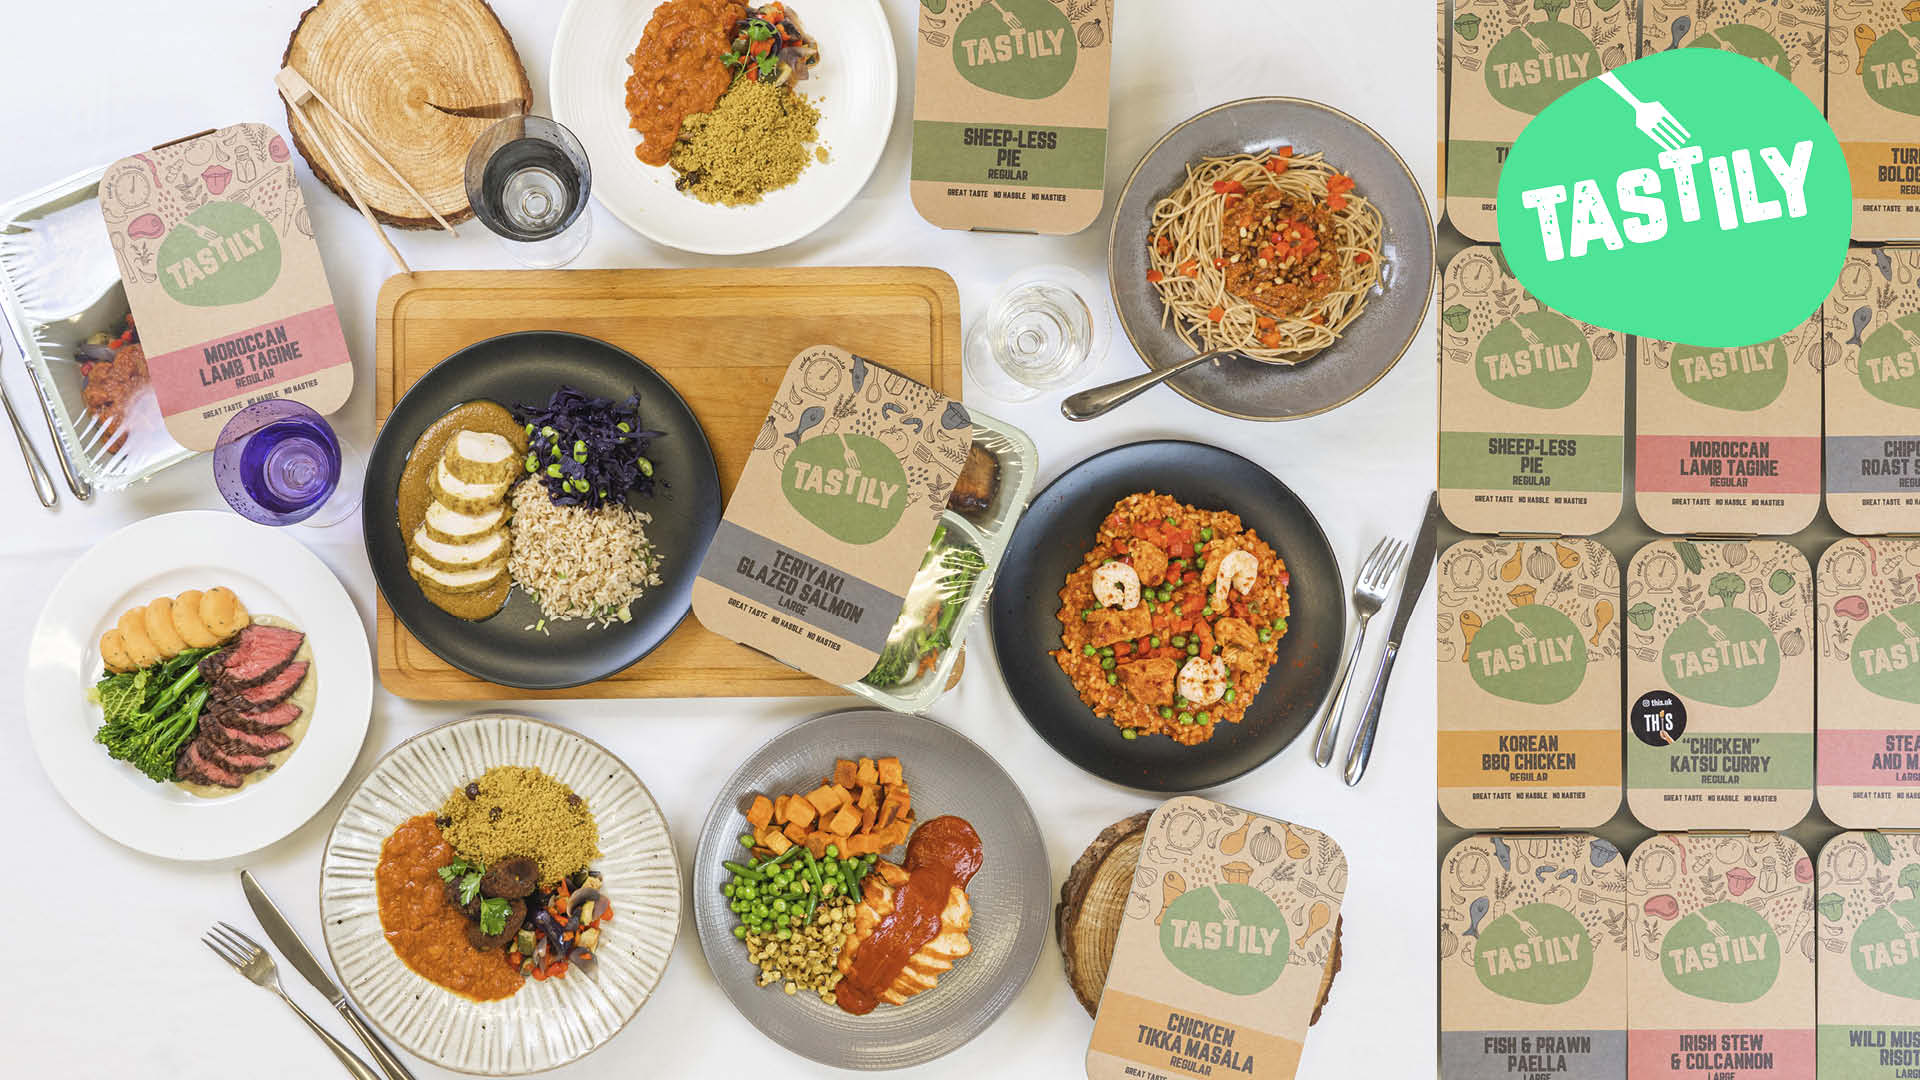 fresh meals from Tastily each week for a month